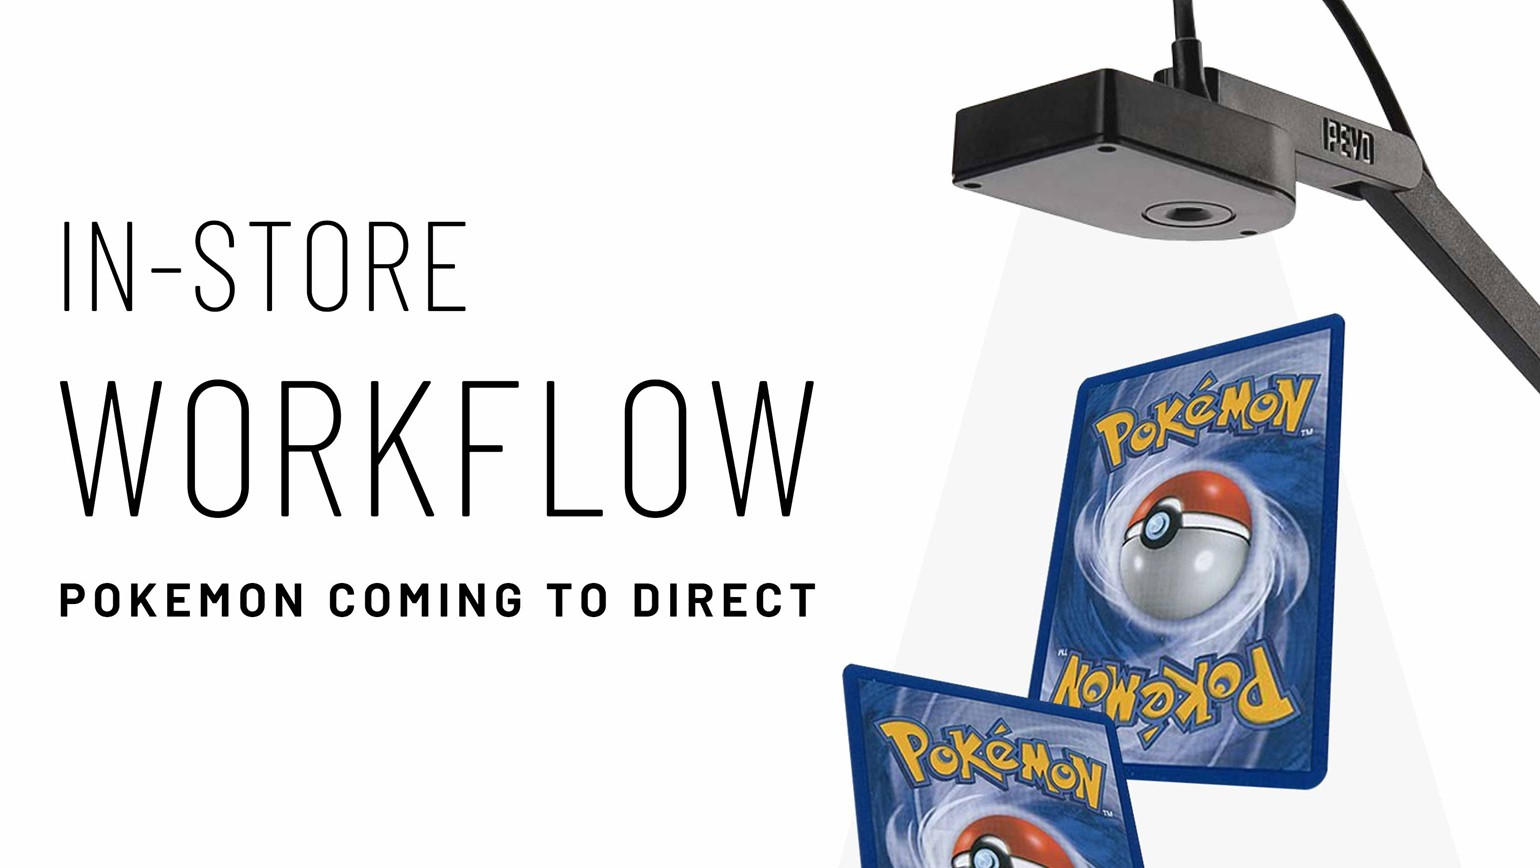 In-Store Workflow: Pokemon Coming to Direct